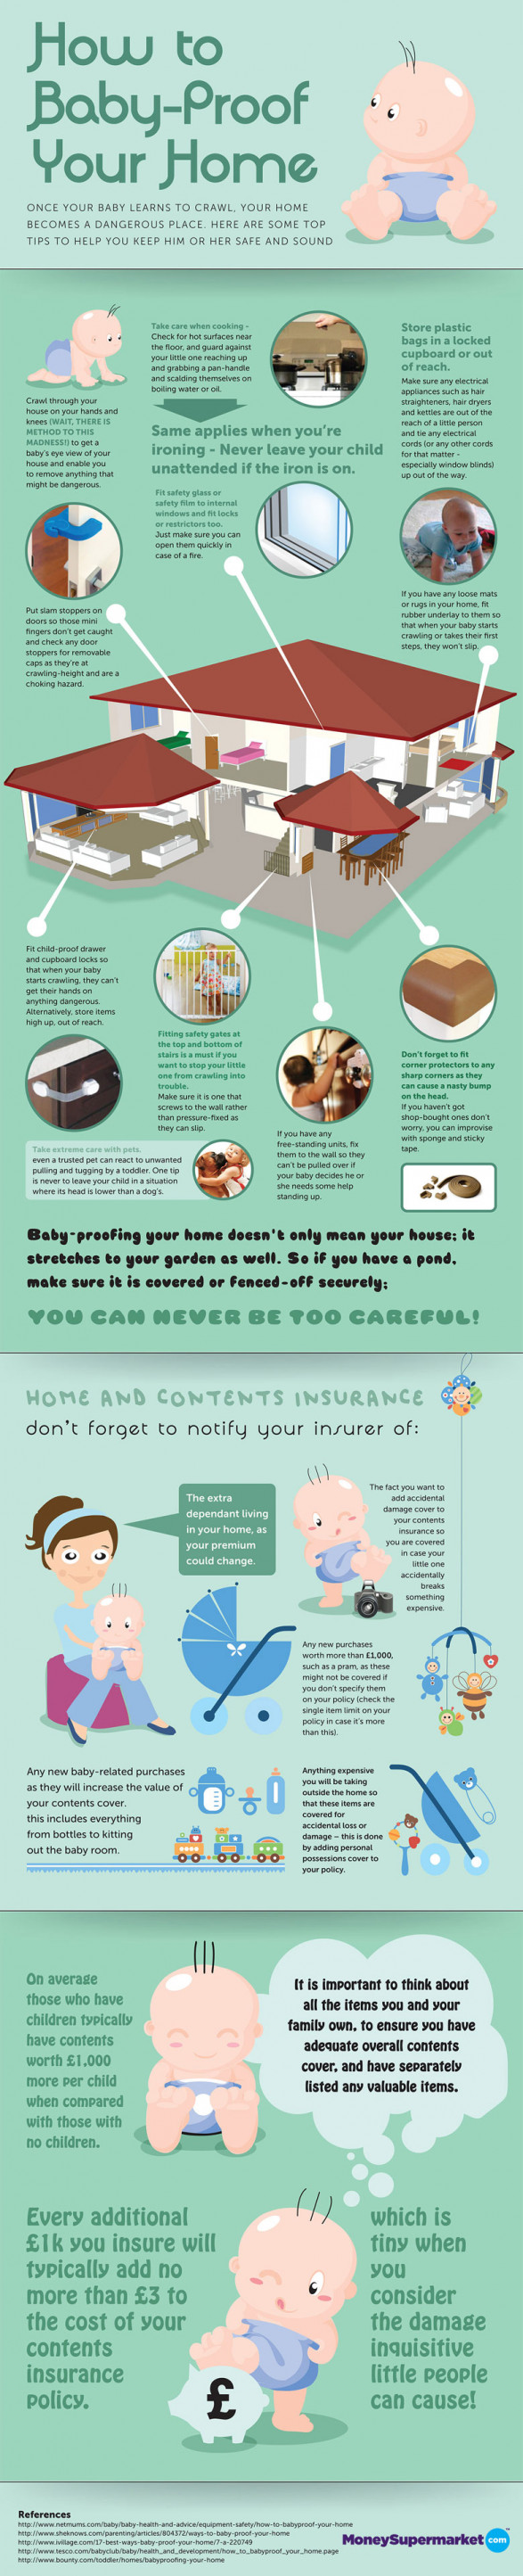 How to Baby-Proof Your Home [Infographic]